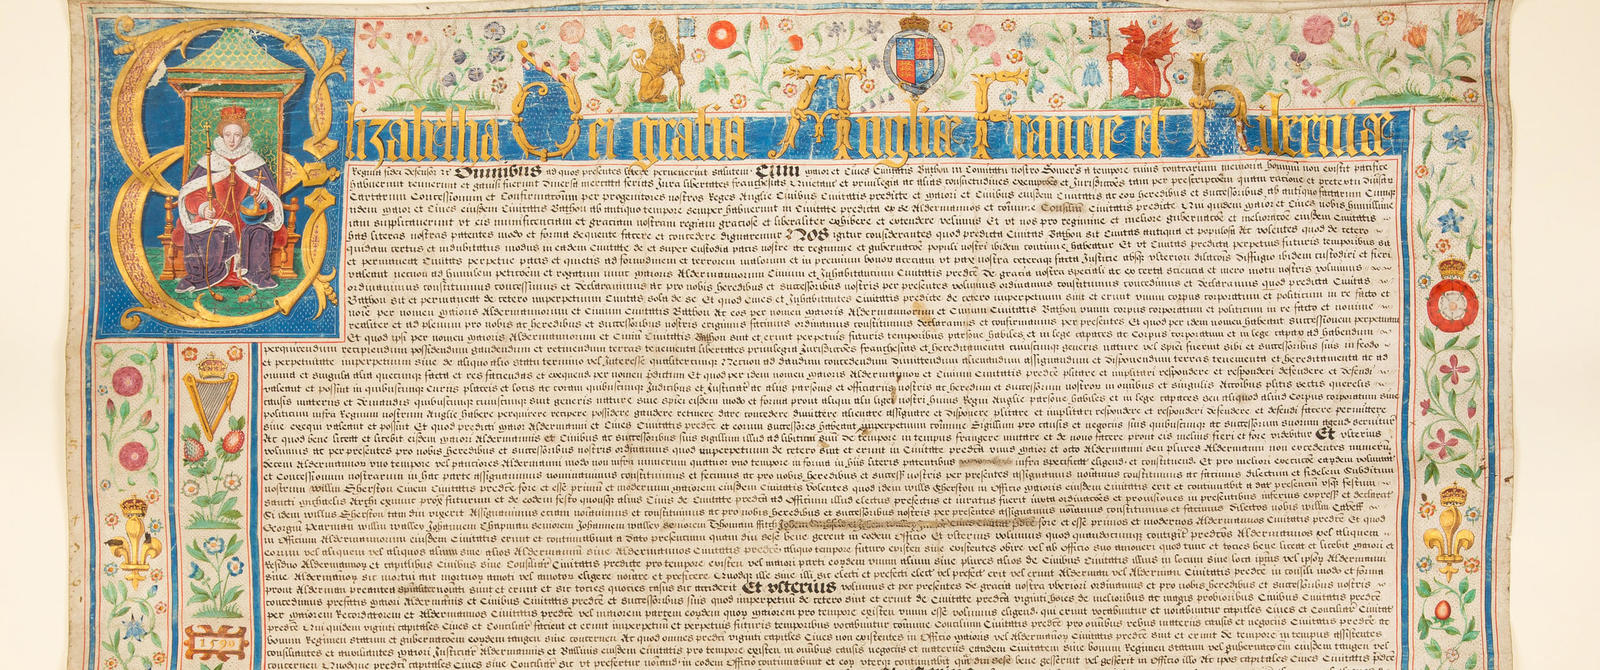 Bath City Charter of Queen Elizabeth I, 1590